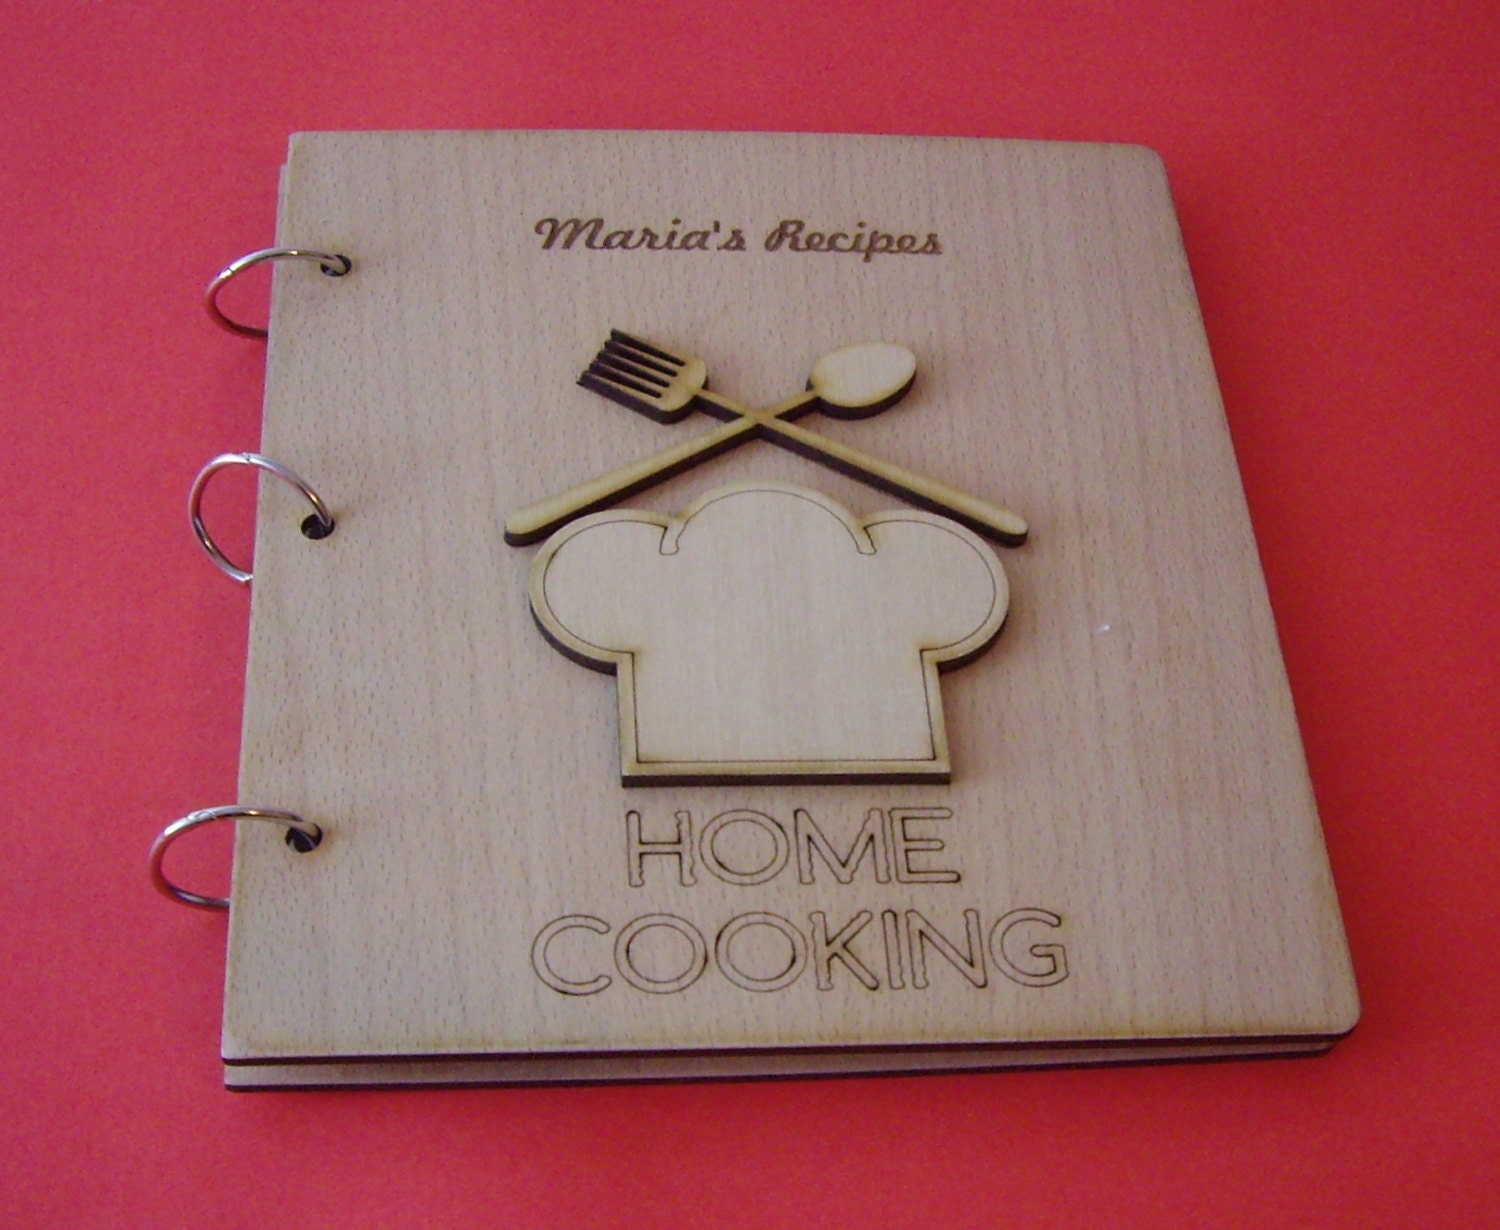 Wood Cover Cookbook : Personalized recipe book all text on the wooden covers can